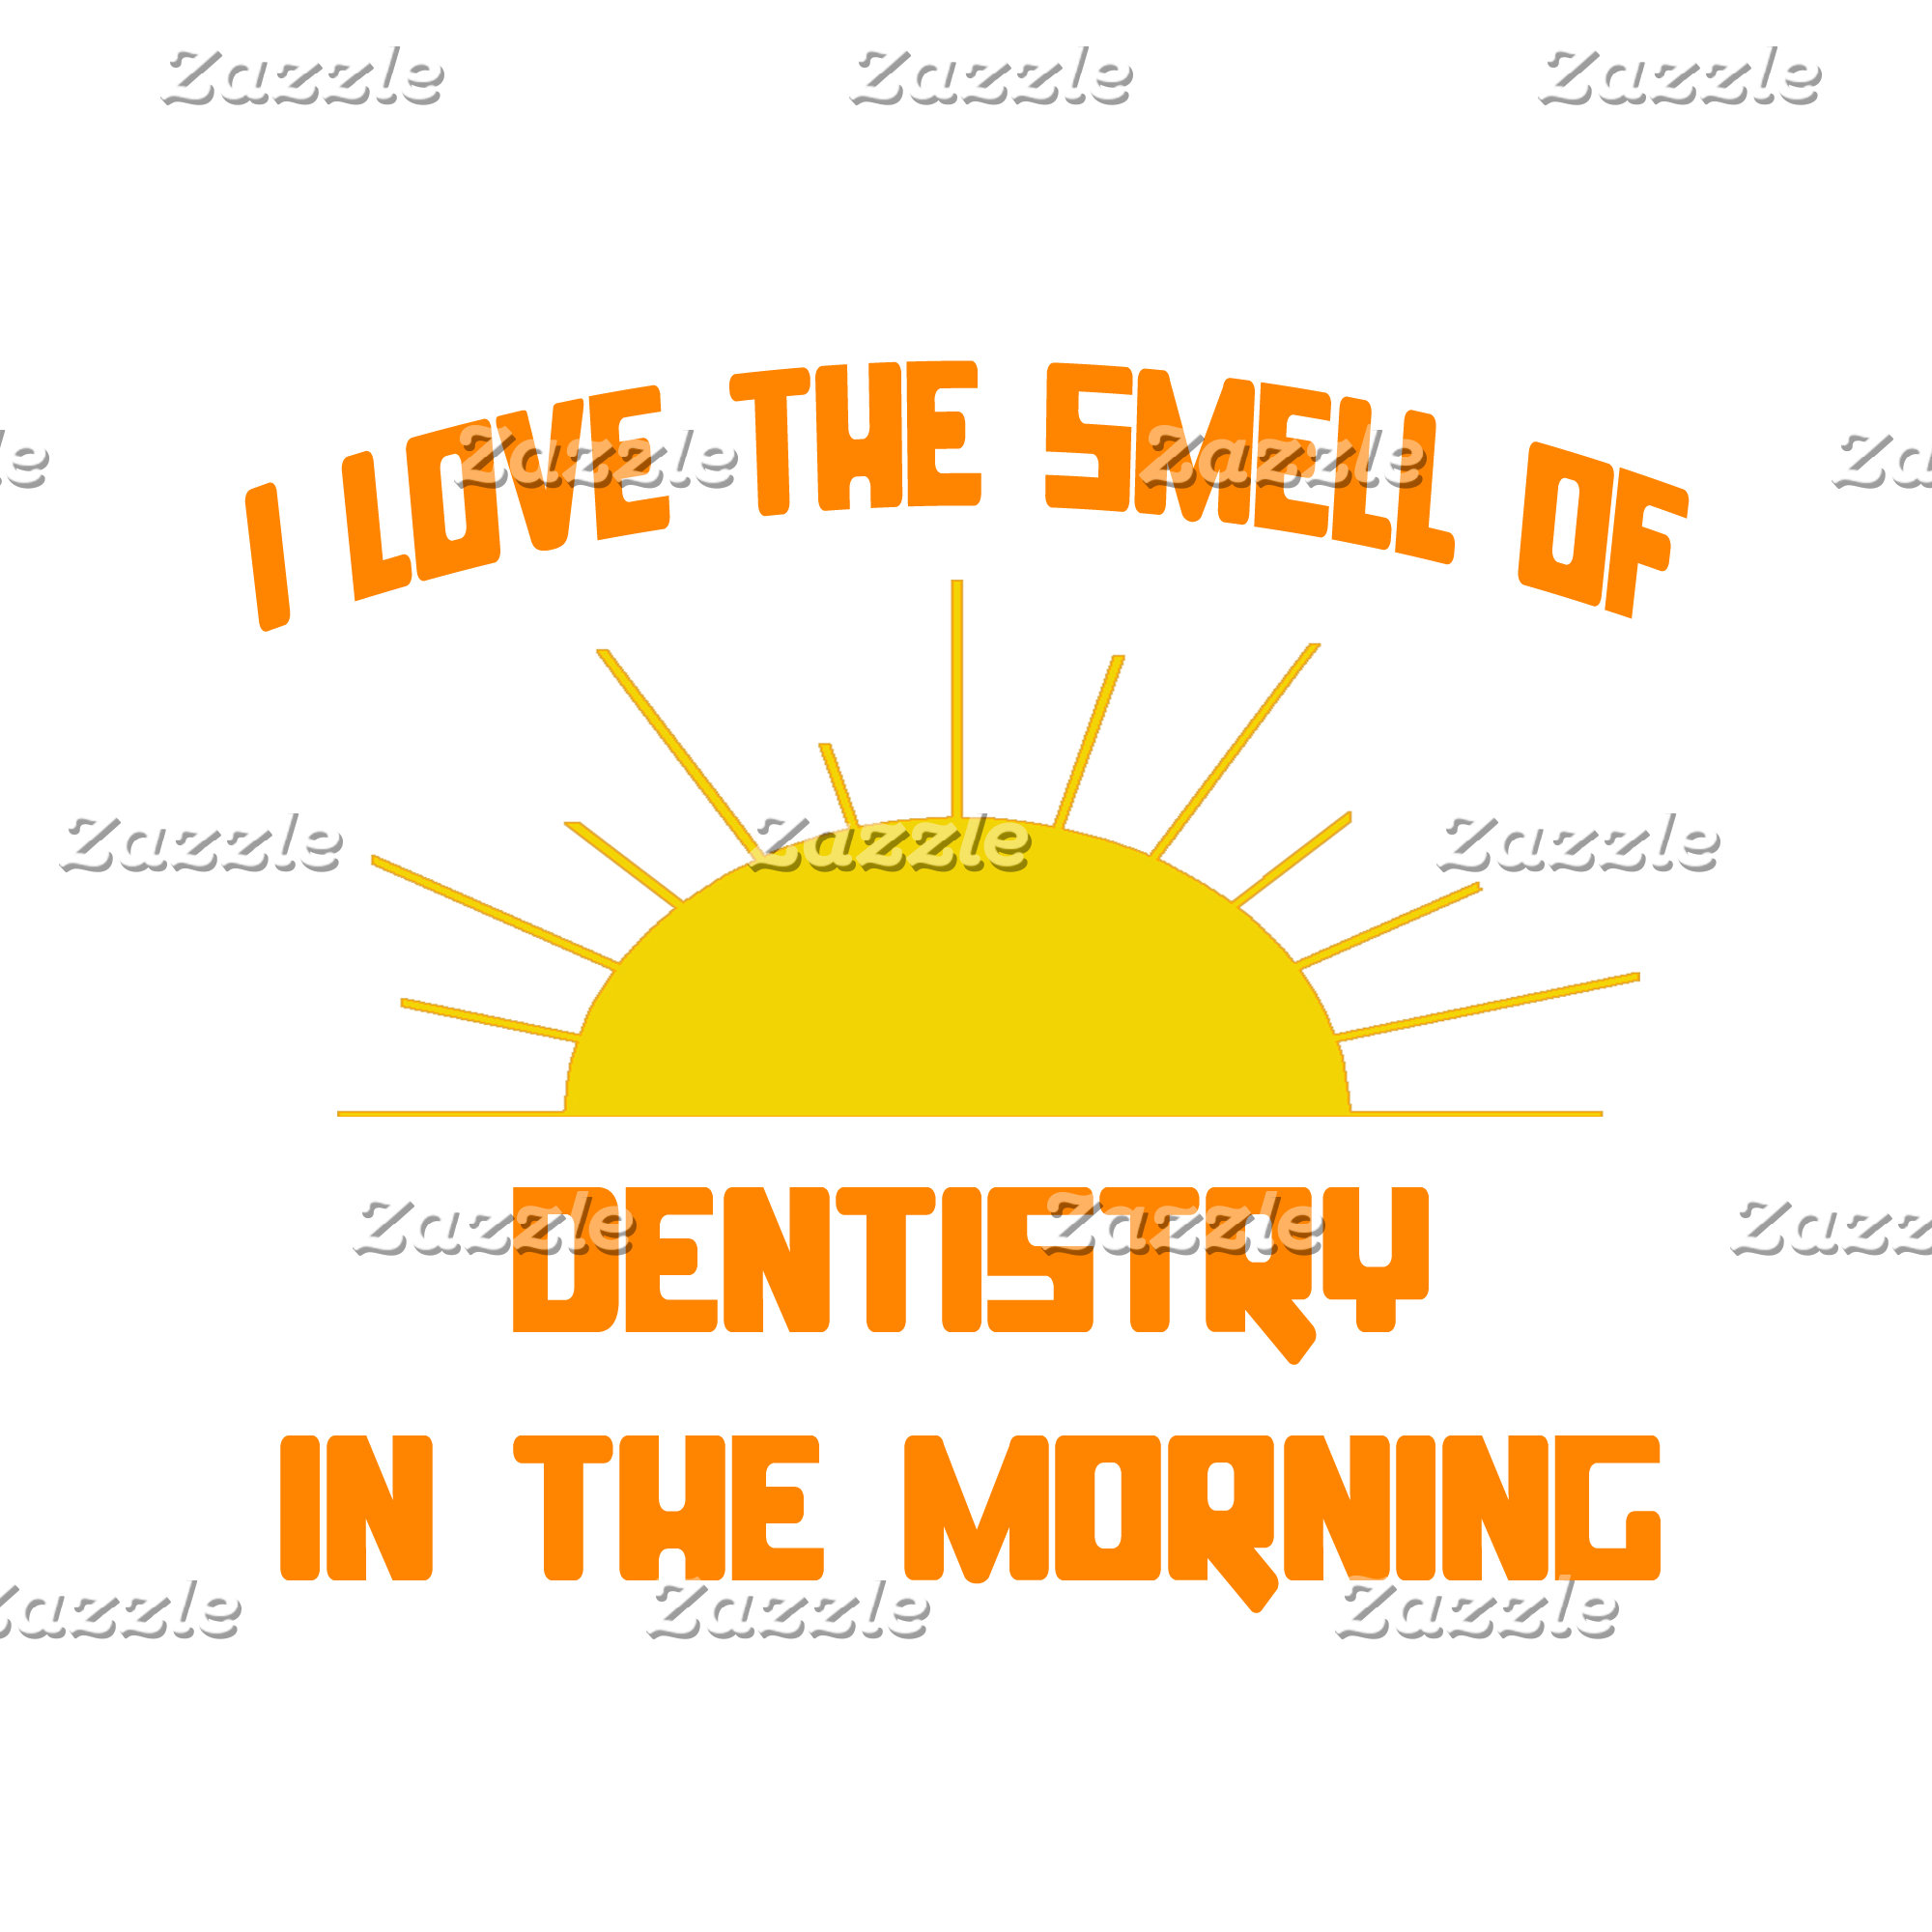 Smell of Dentistry in the Morning